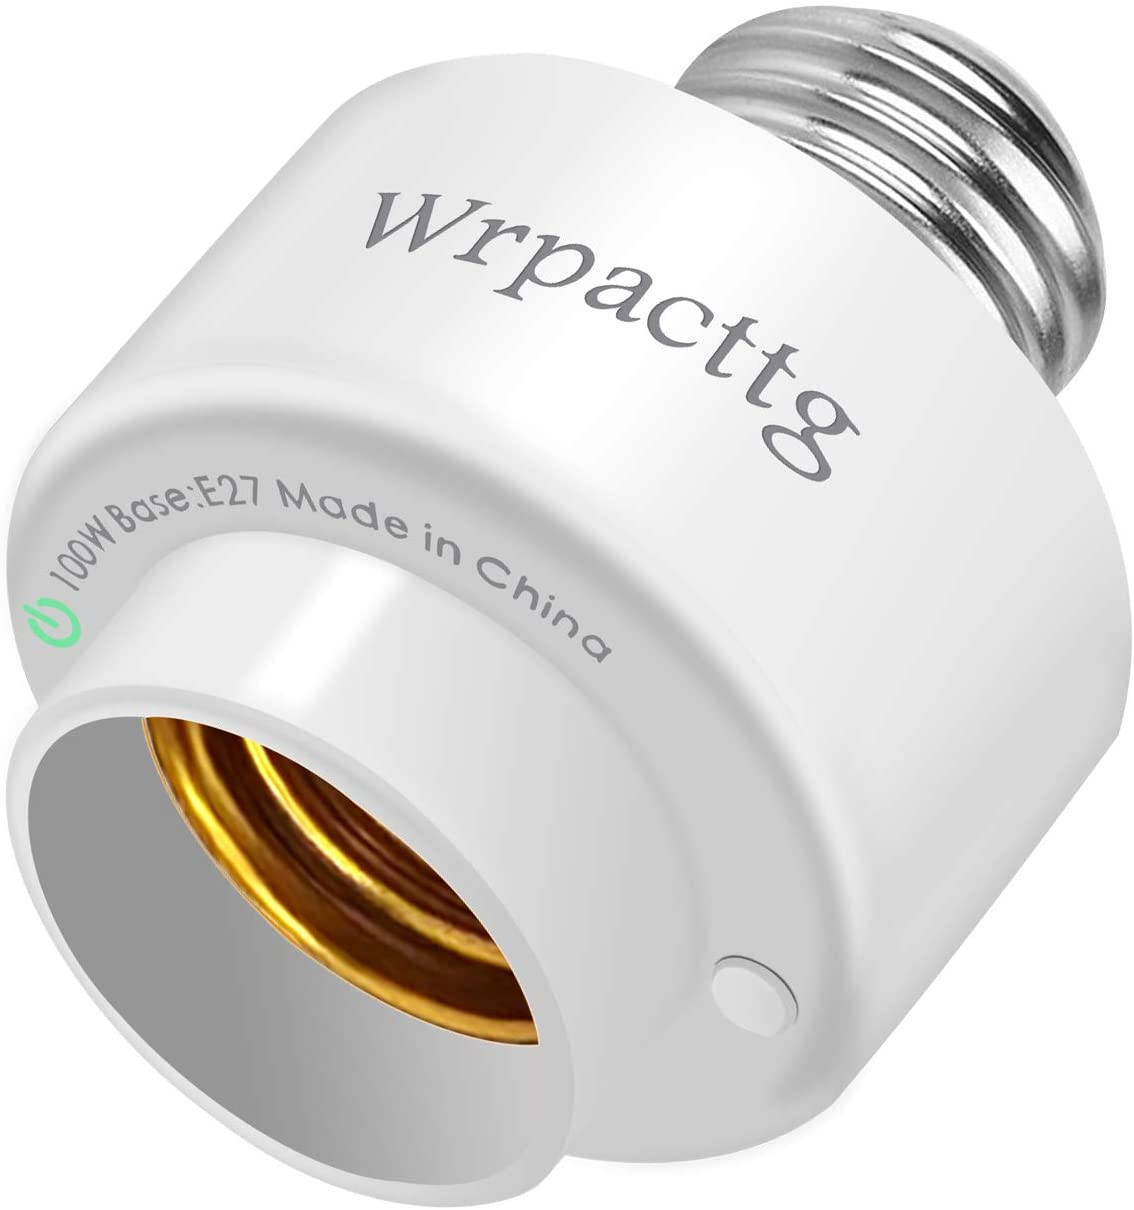 wrpacttg Smart Lighting Base